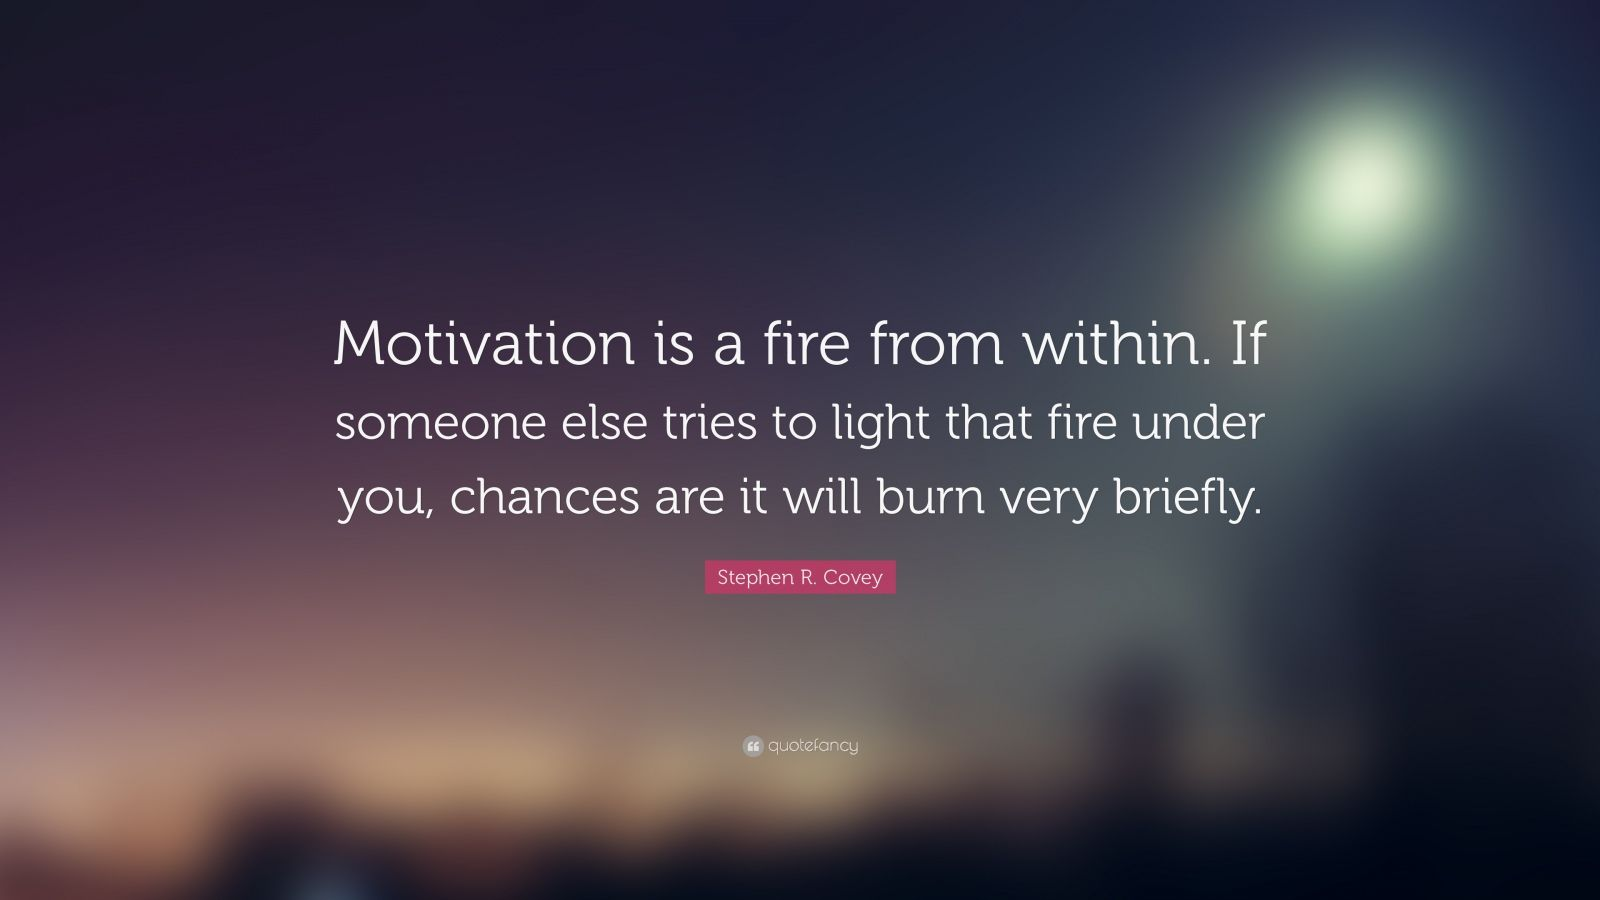 36436-Stephen-R-Covey-Quote-Motivation-is-a-fire-from-within-If-someone